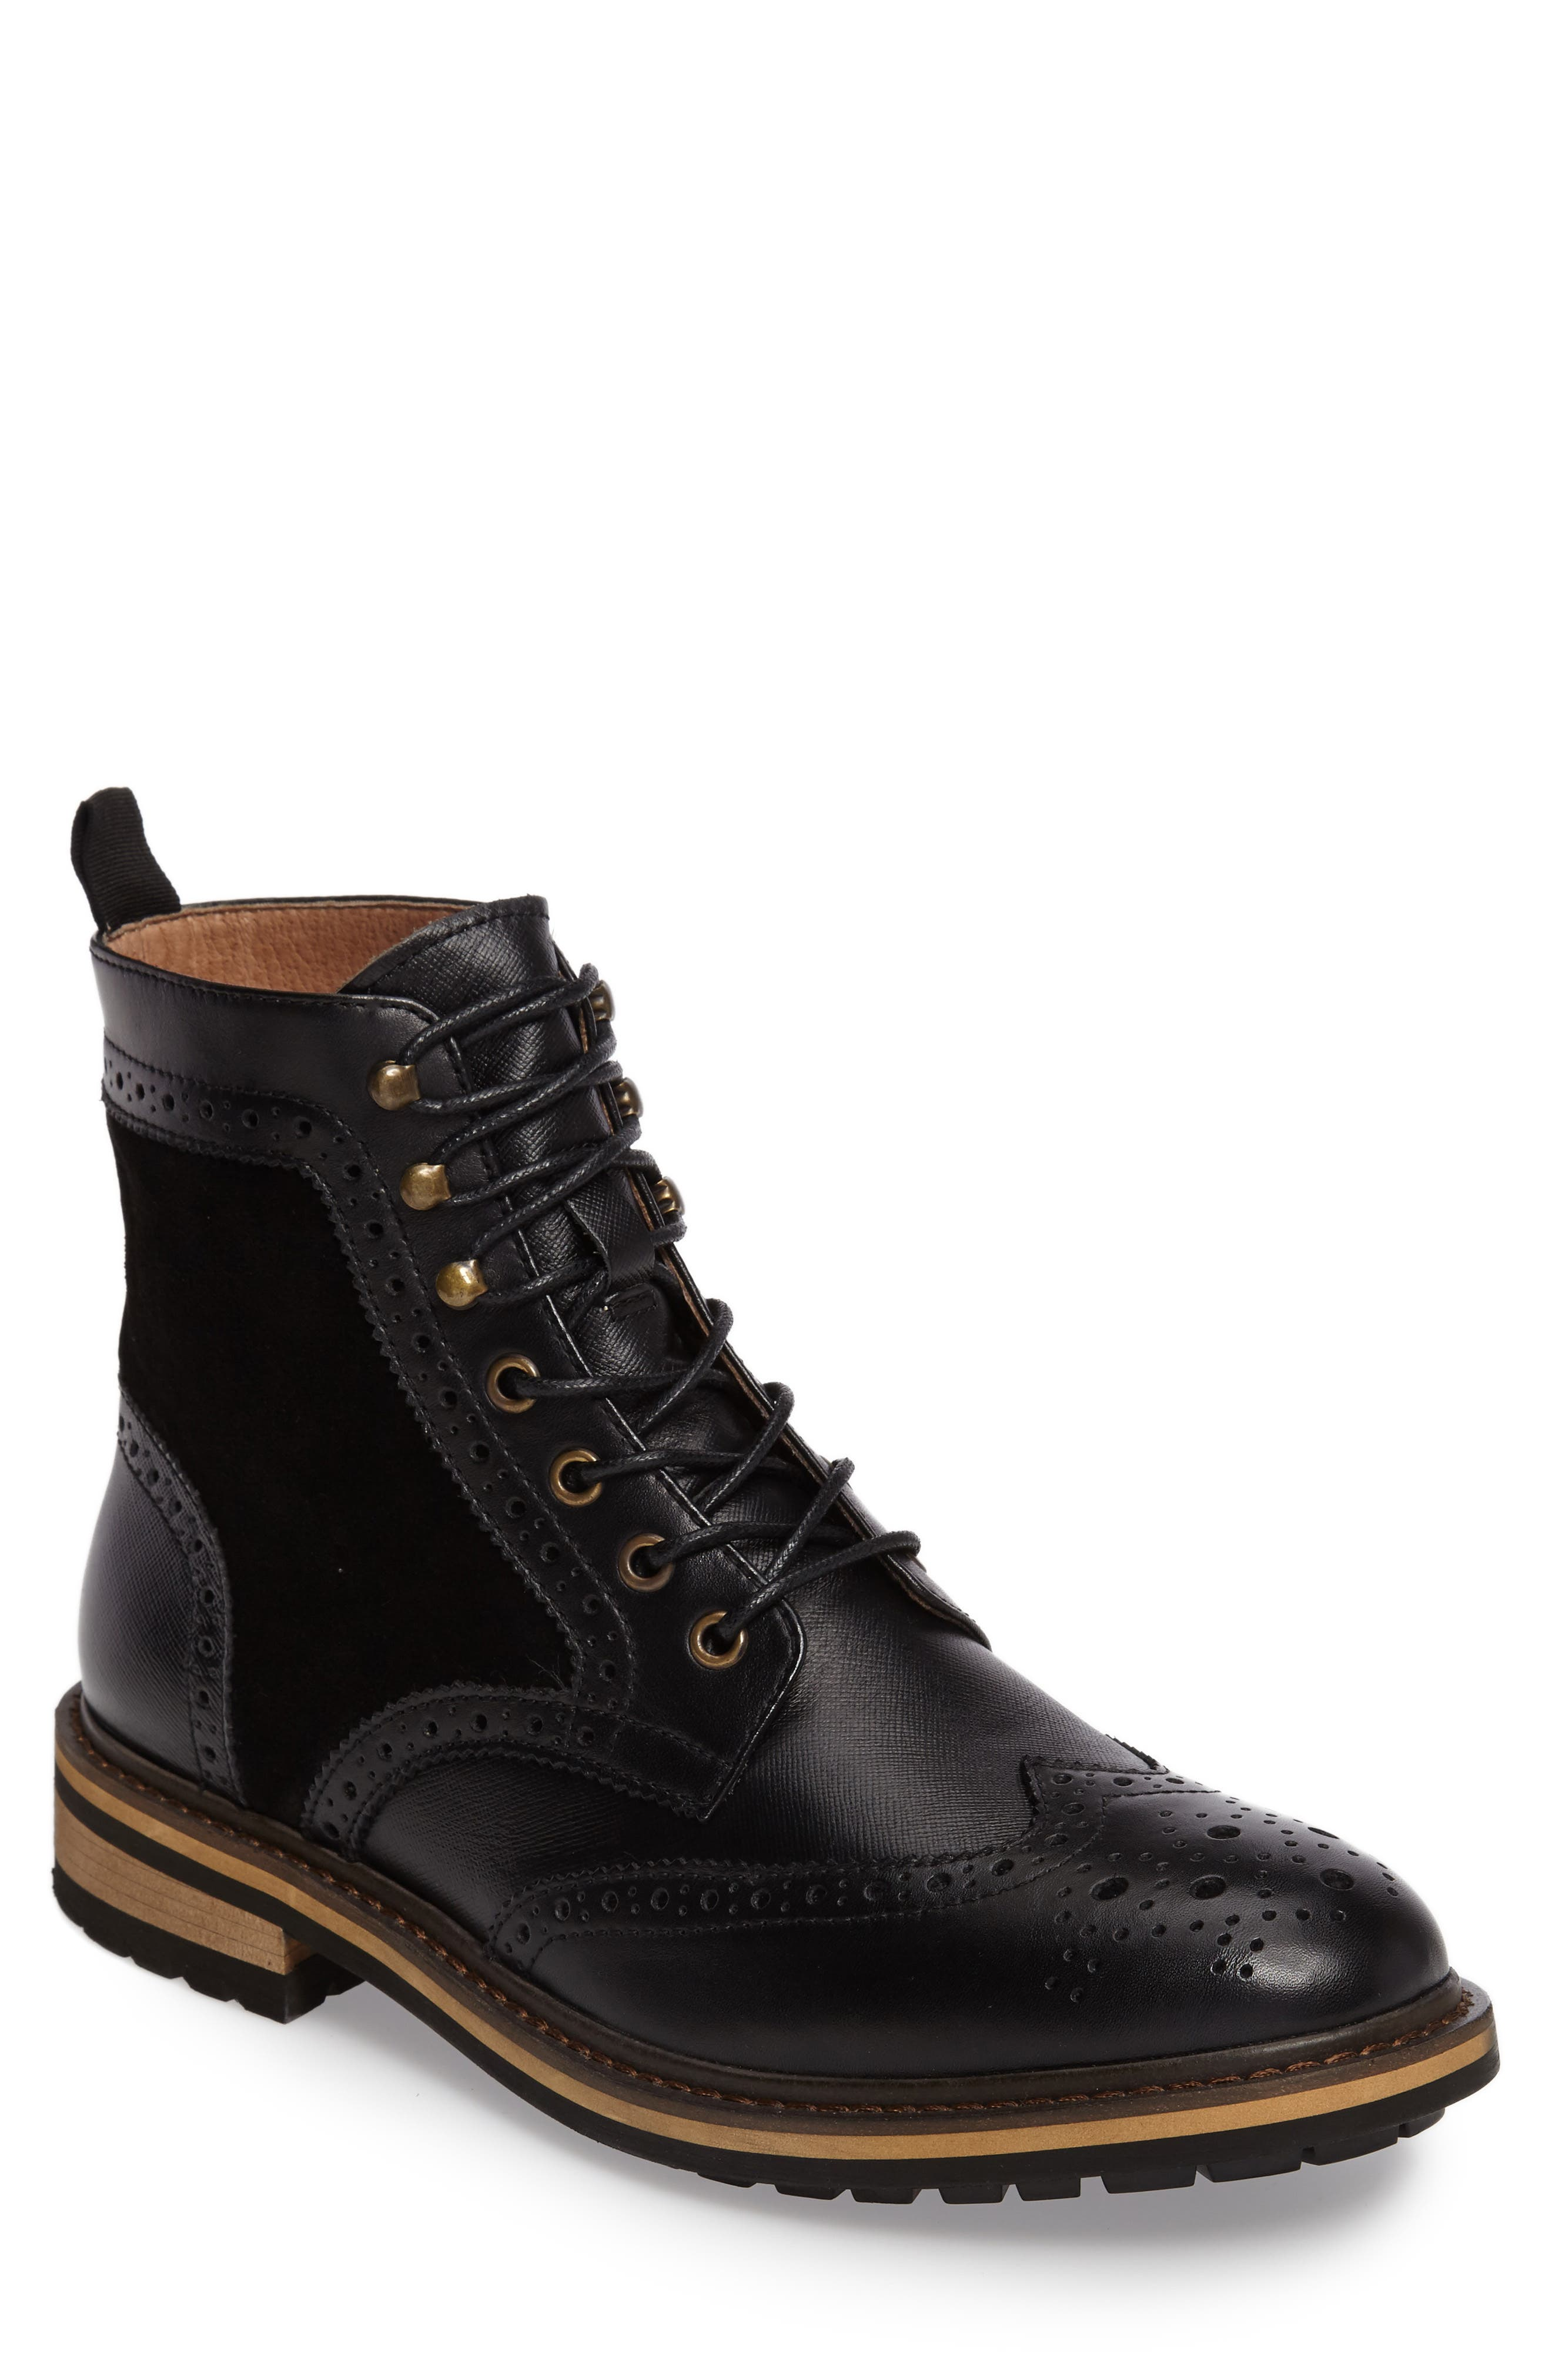 Grange Wingtip Boot,                             Main thumbnail 1, color,                             001